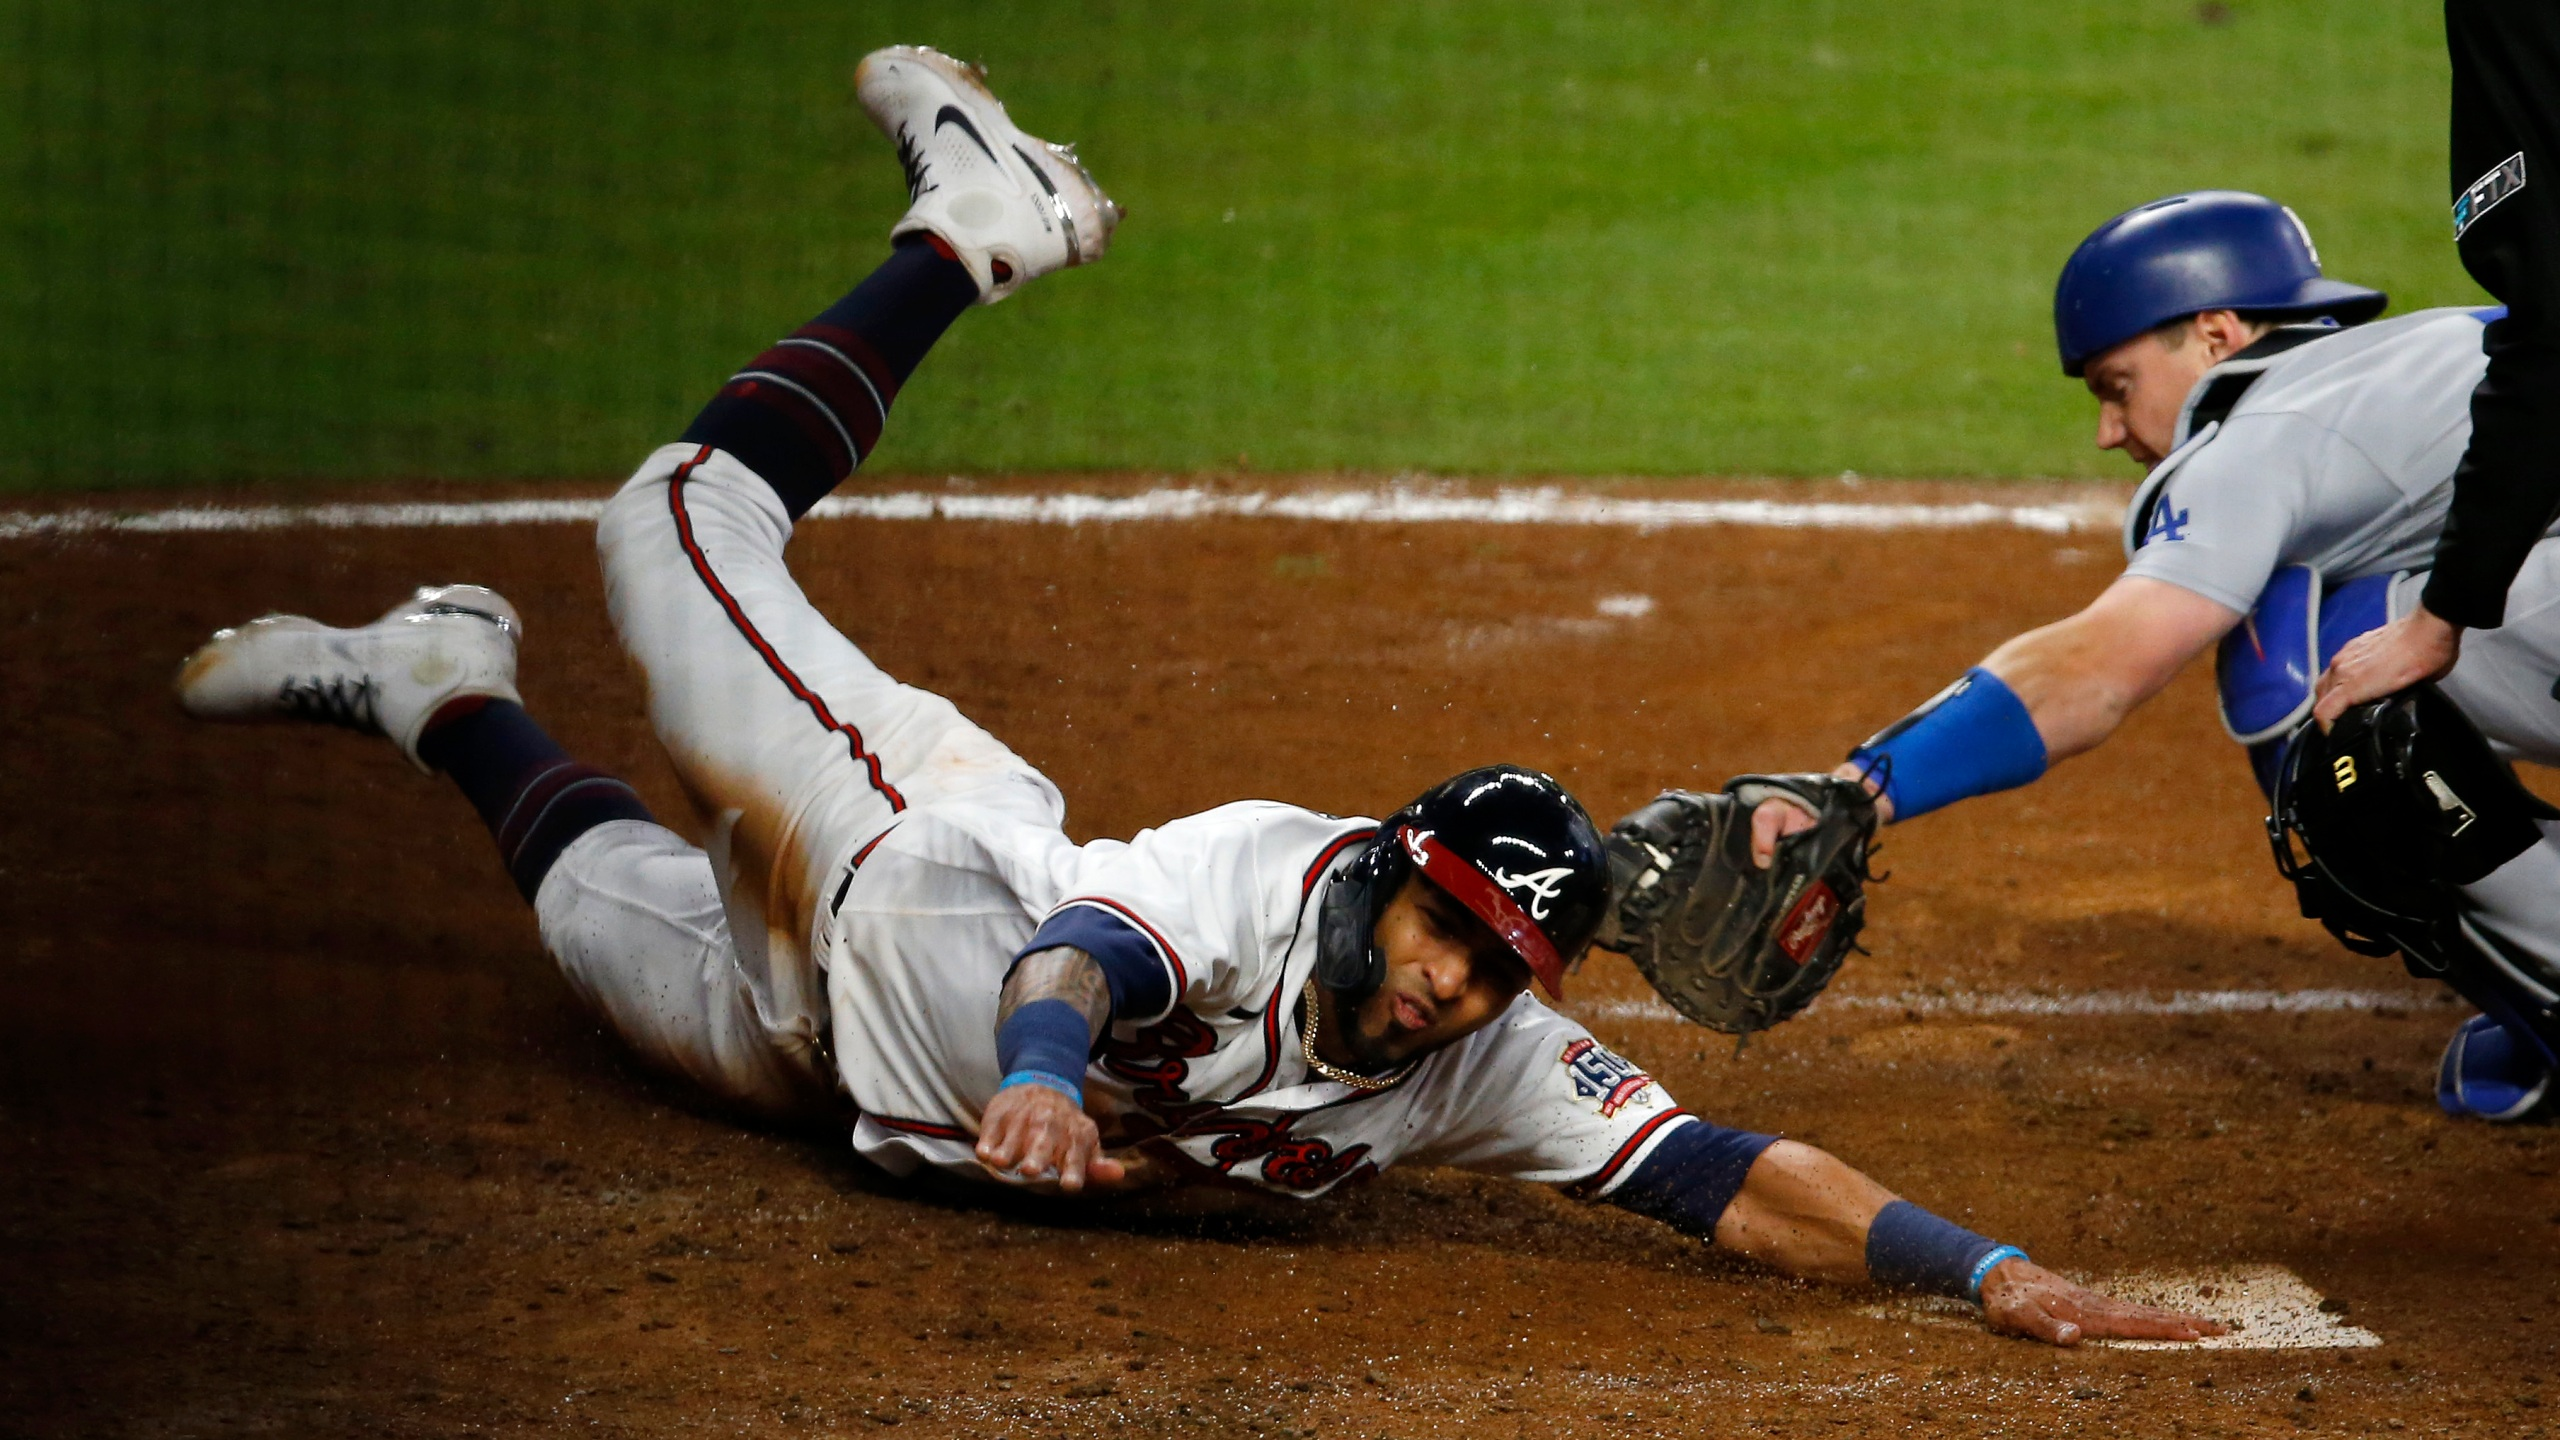 Eddie Rosario #8 of the Atlanta Braves slides safely past Will Smith #16 of the Los Angeles Dodgers to score in the eighth inning of Game Two of the National League Championship Series at Truist Park on October 17, 2021 in Atlanta, Georgia. (Photo by Michael Zarrilli/Getty Images)